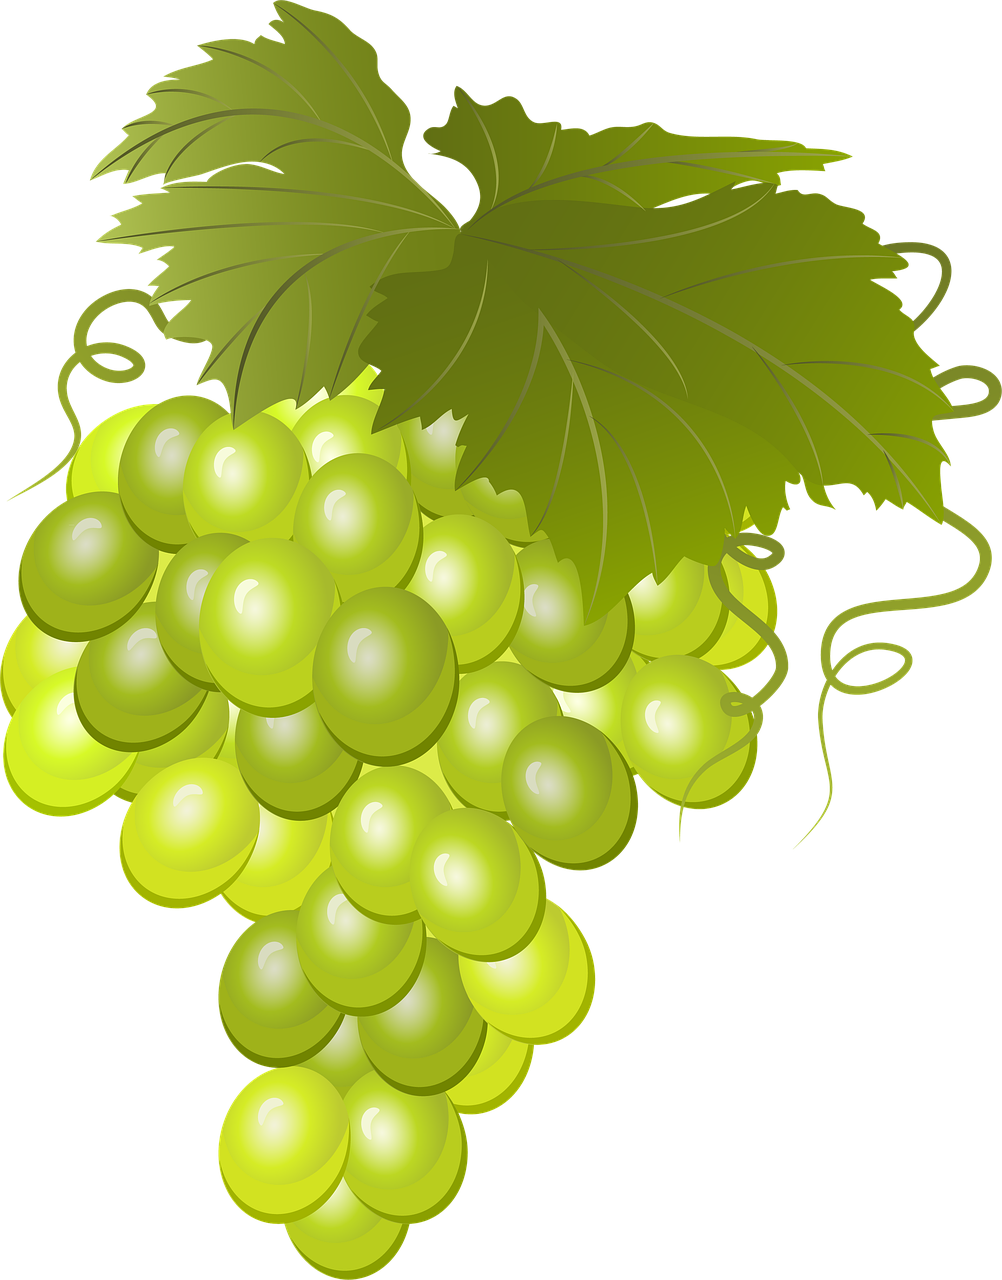 Grapes Bunch Of Vine Green - Free image on Pixabay